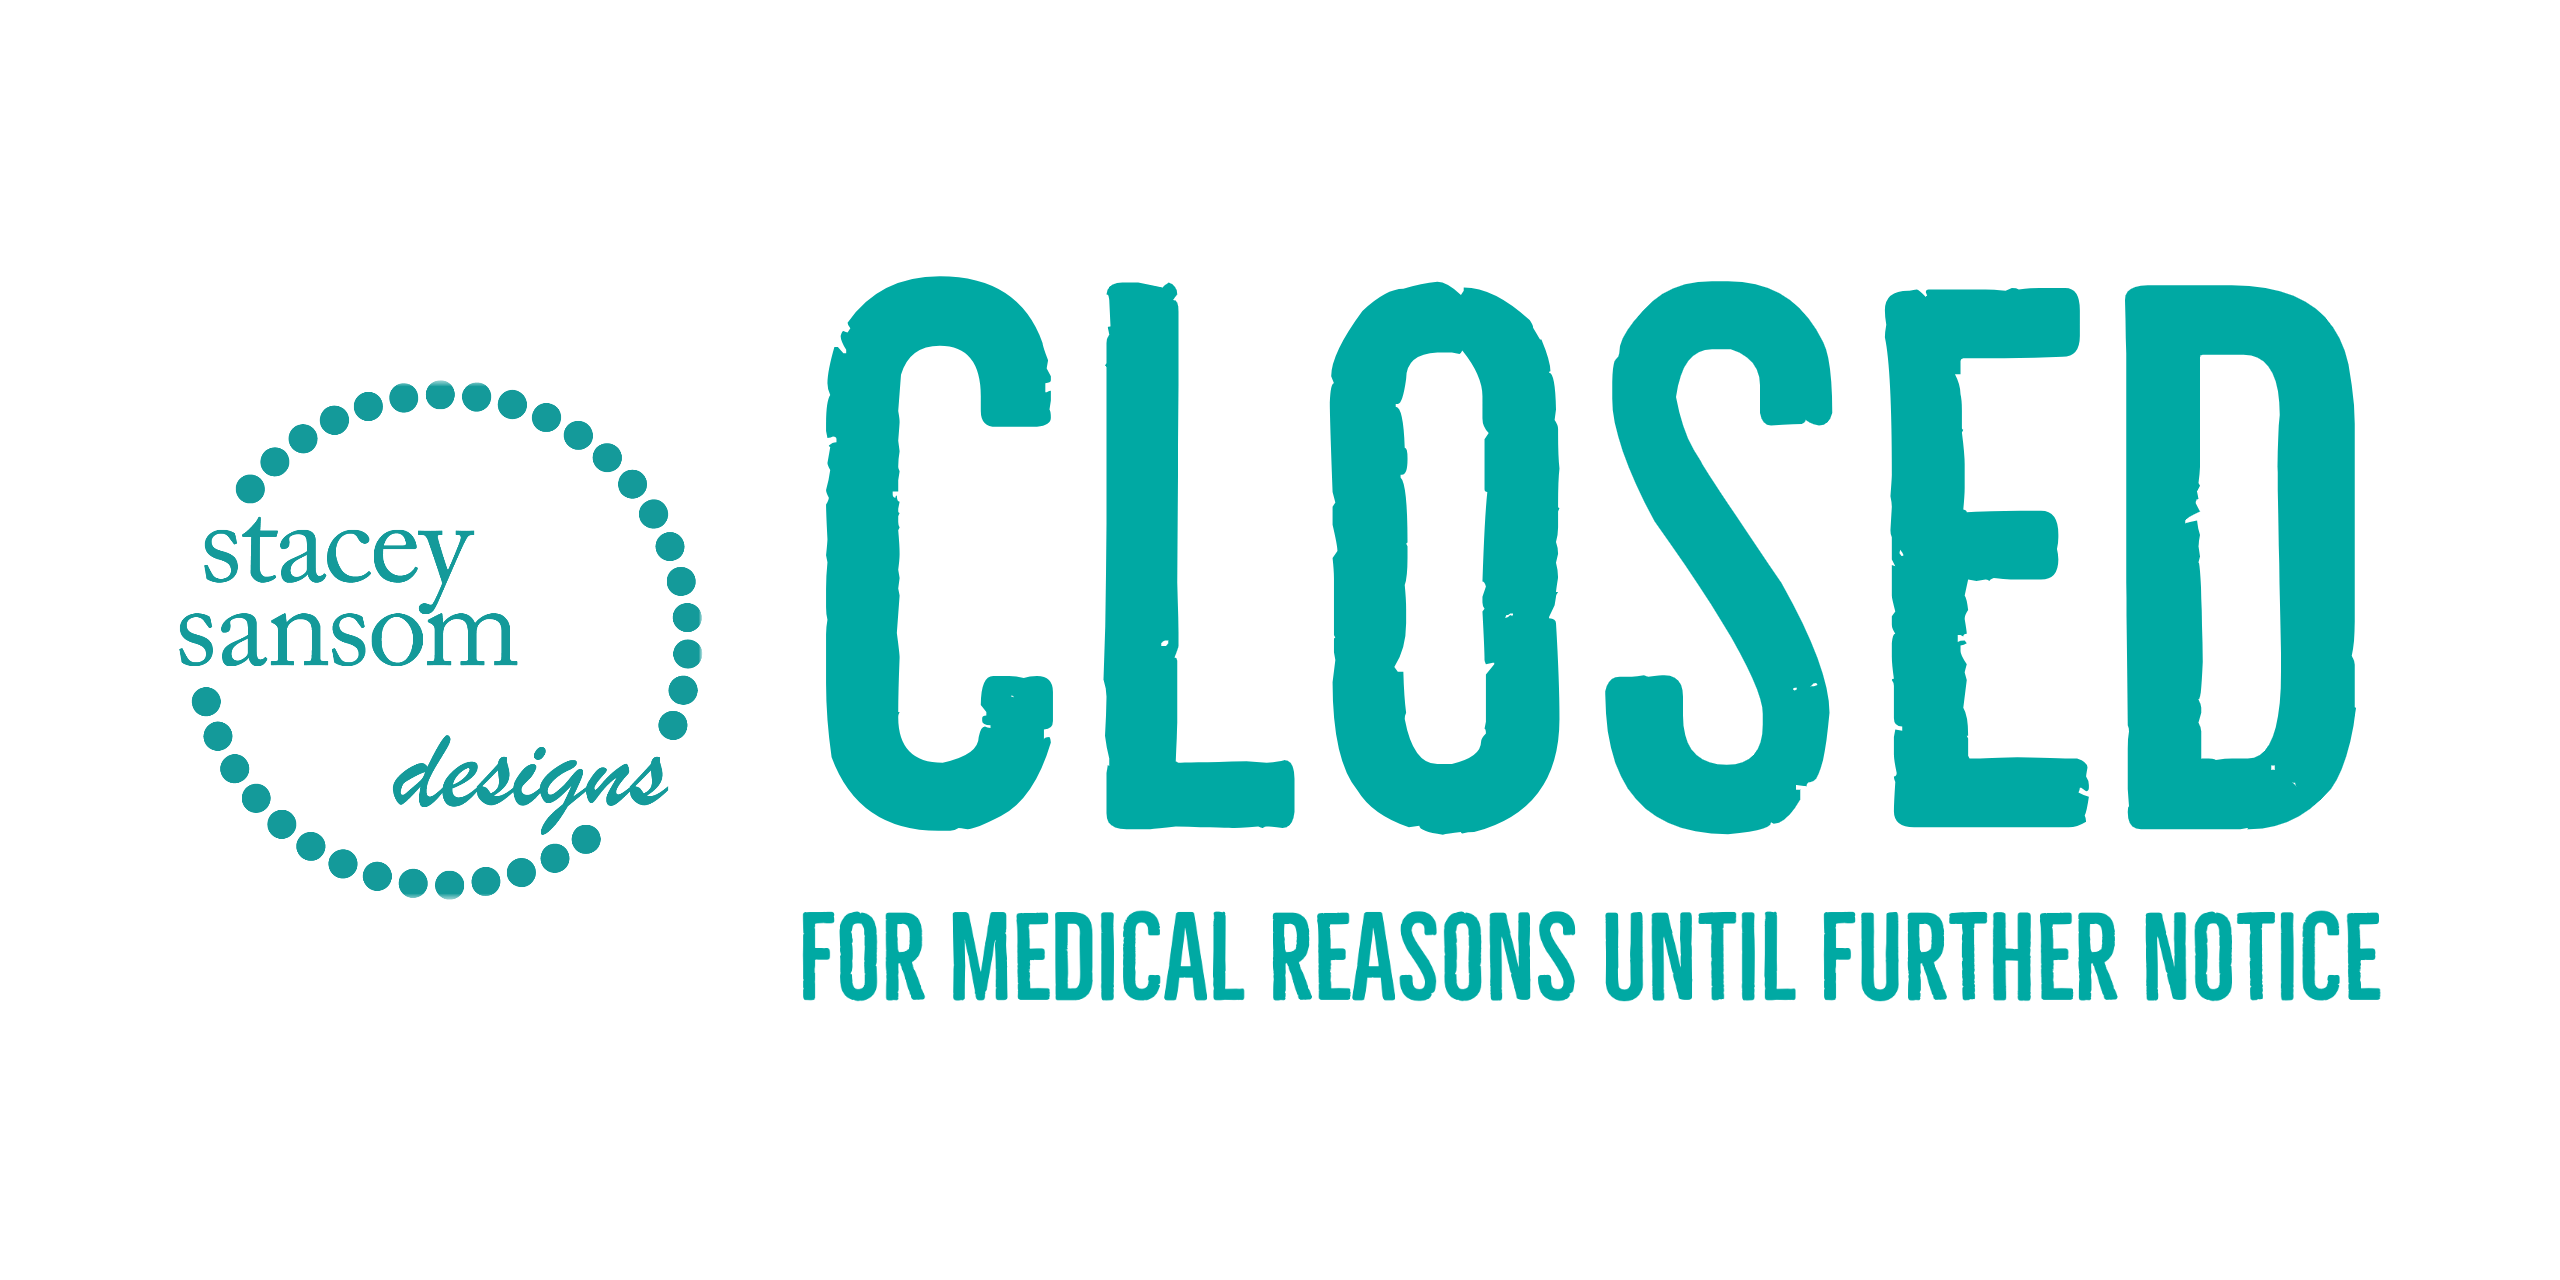 Temporarily Closed due to medical reasons until further notice | Stacey Sansom Designs